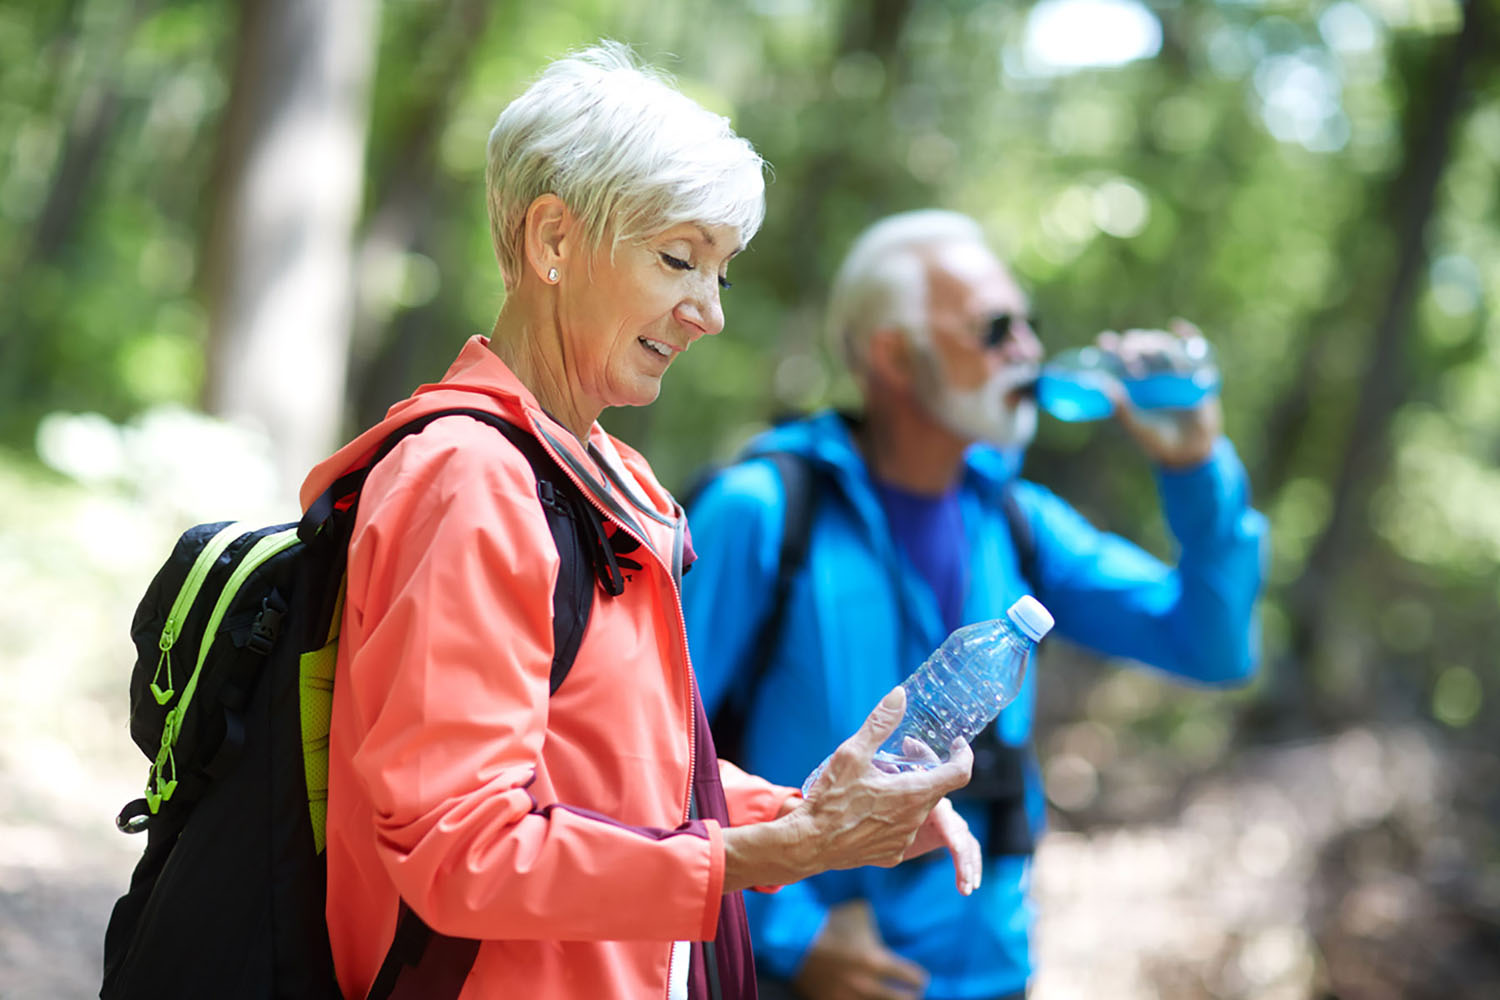 A man and woman out exploring nature each drink a bottle of water